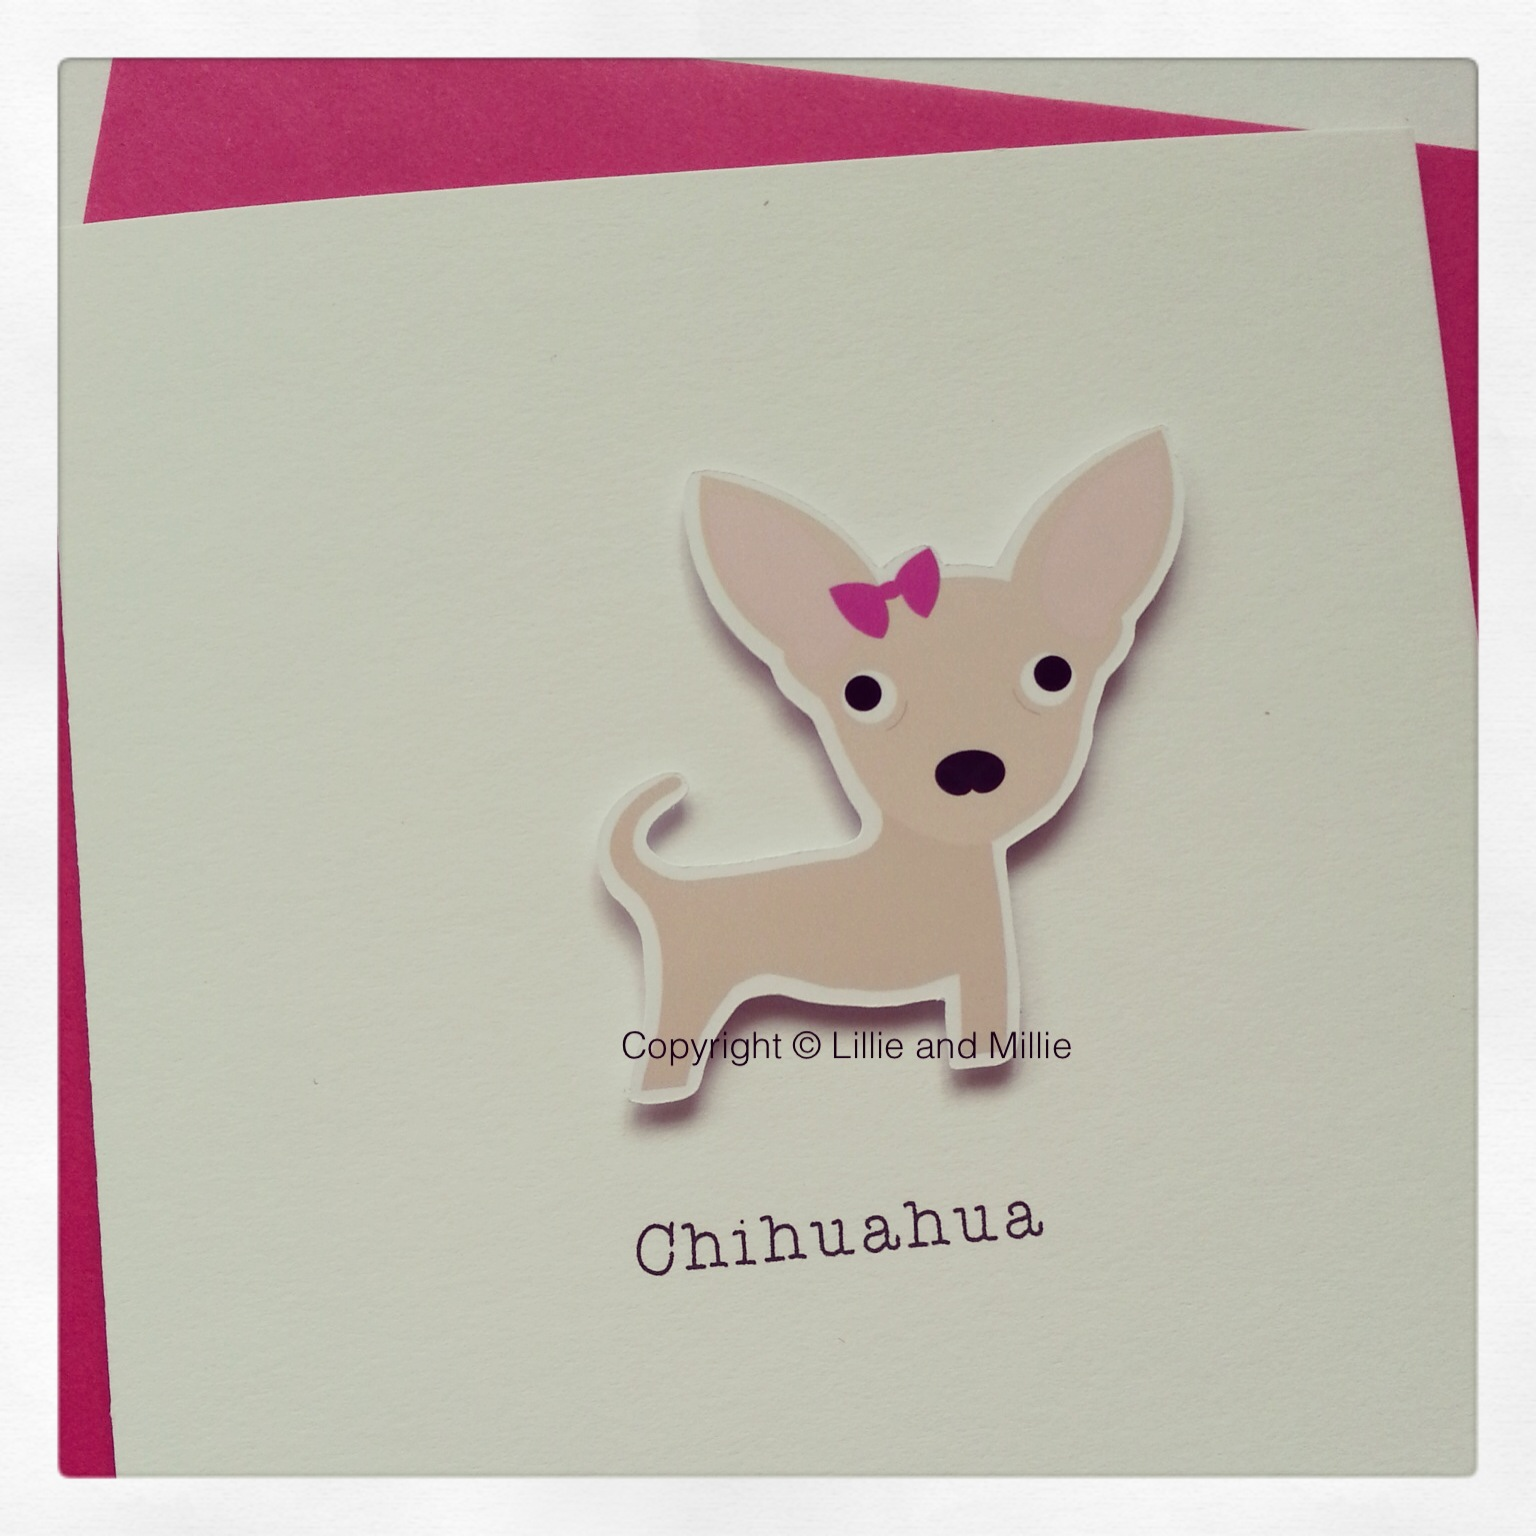 Cute and Cuddly Chihuahua Greetings Card